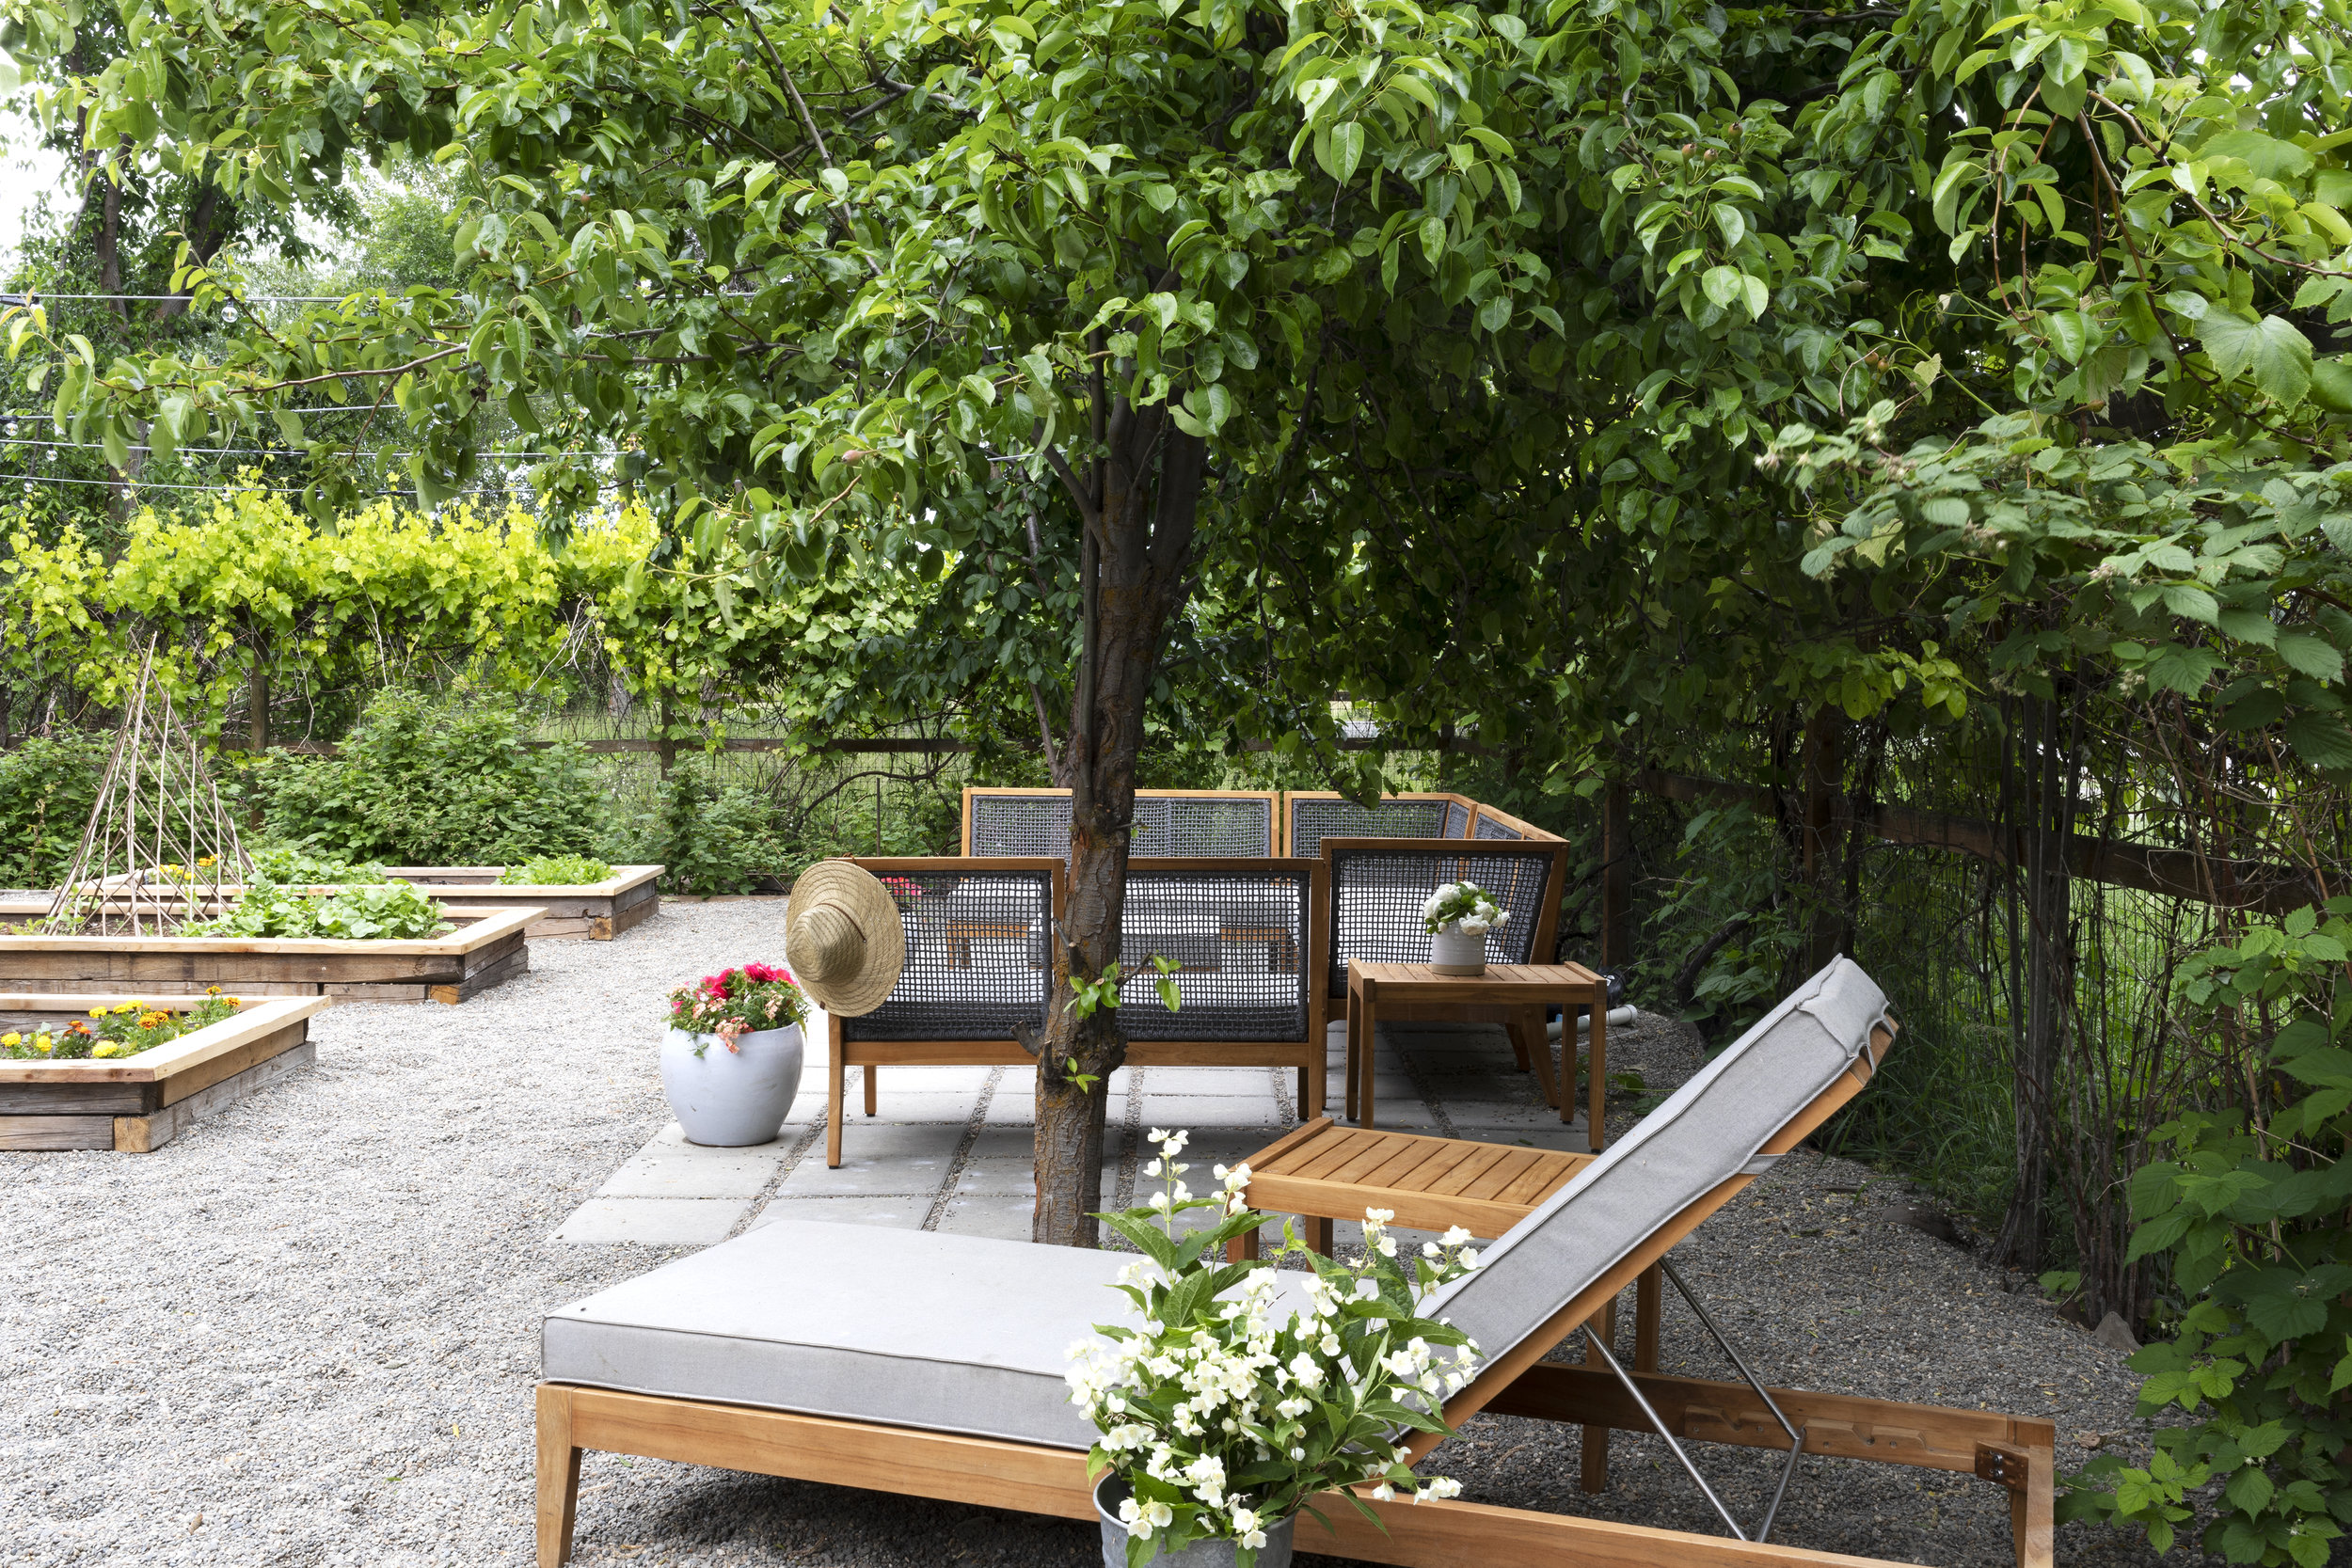 Our Farmhouse Garden And Outdoor Living Space The Grit And Polish